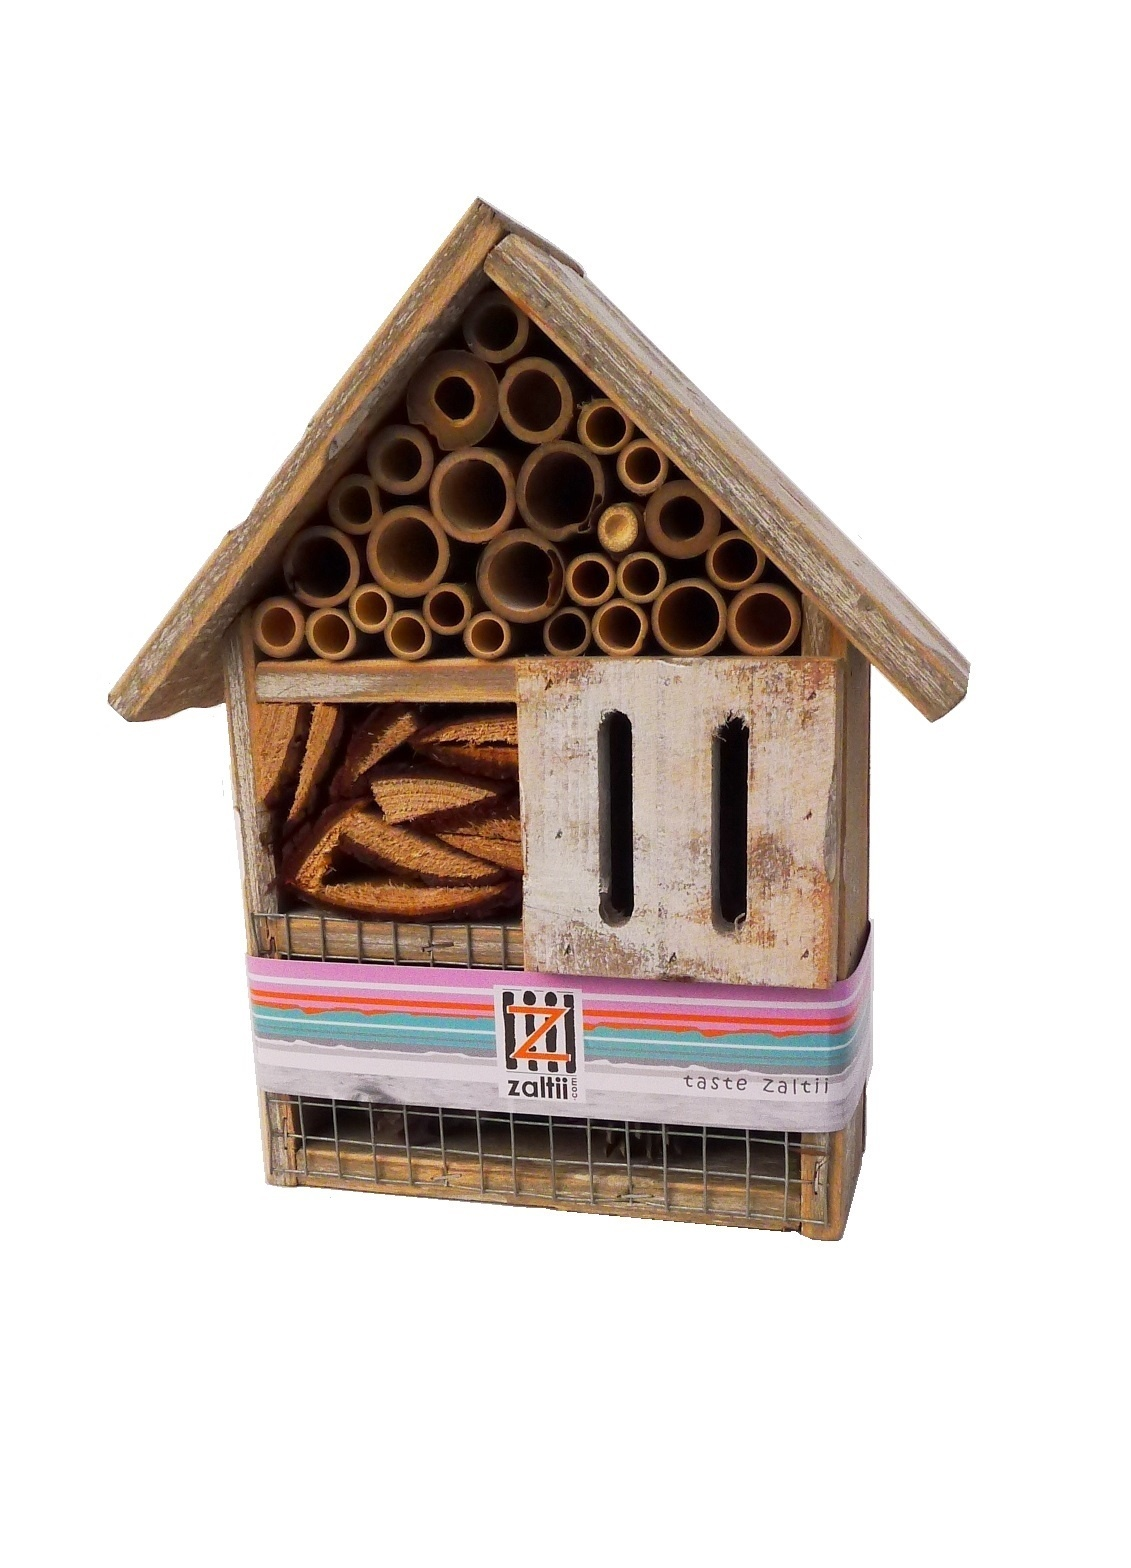 birdhouse old dutch insect hotel A wide-3